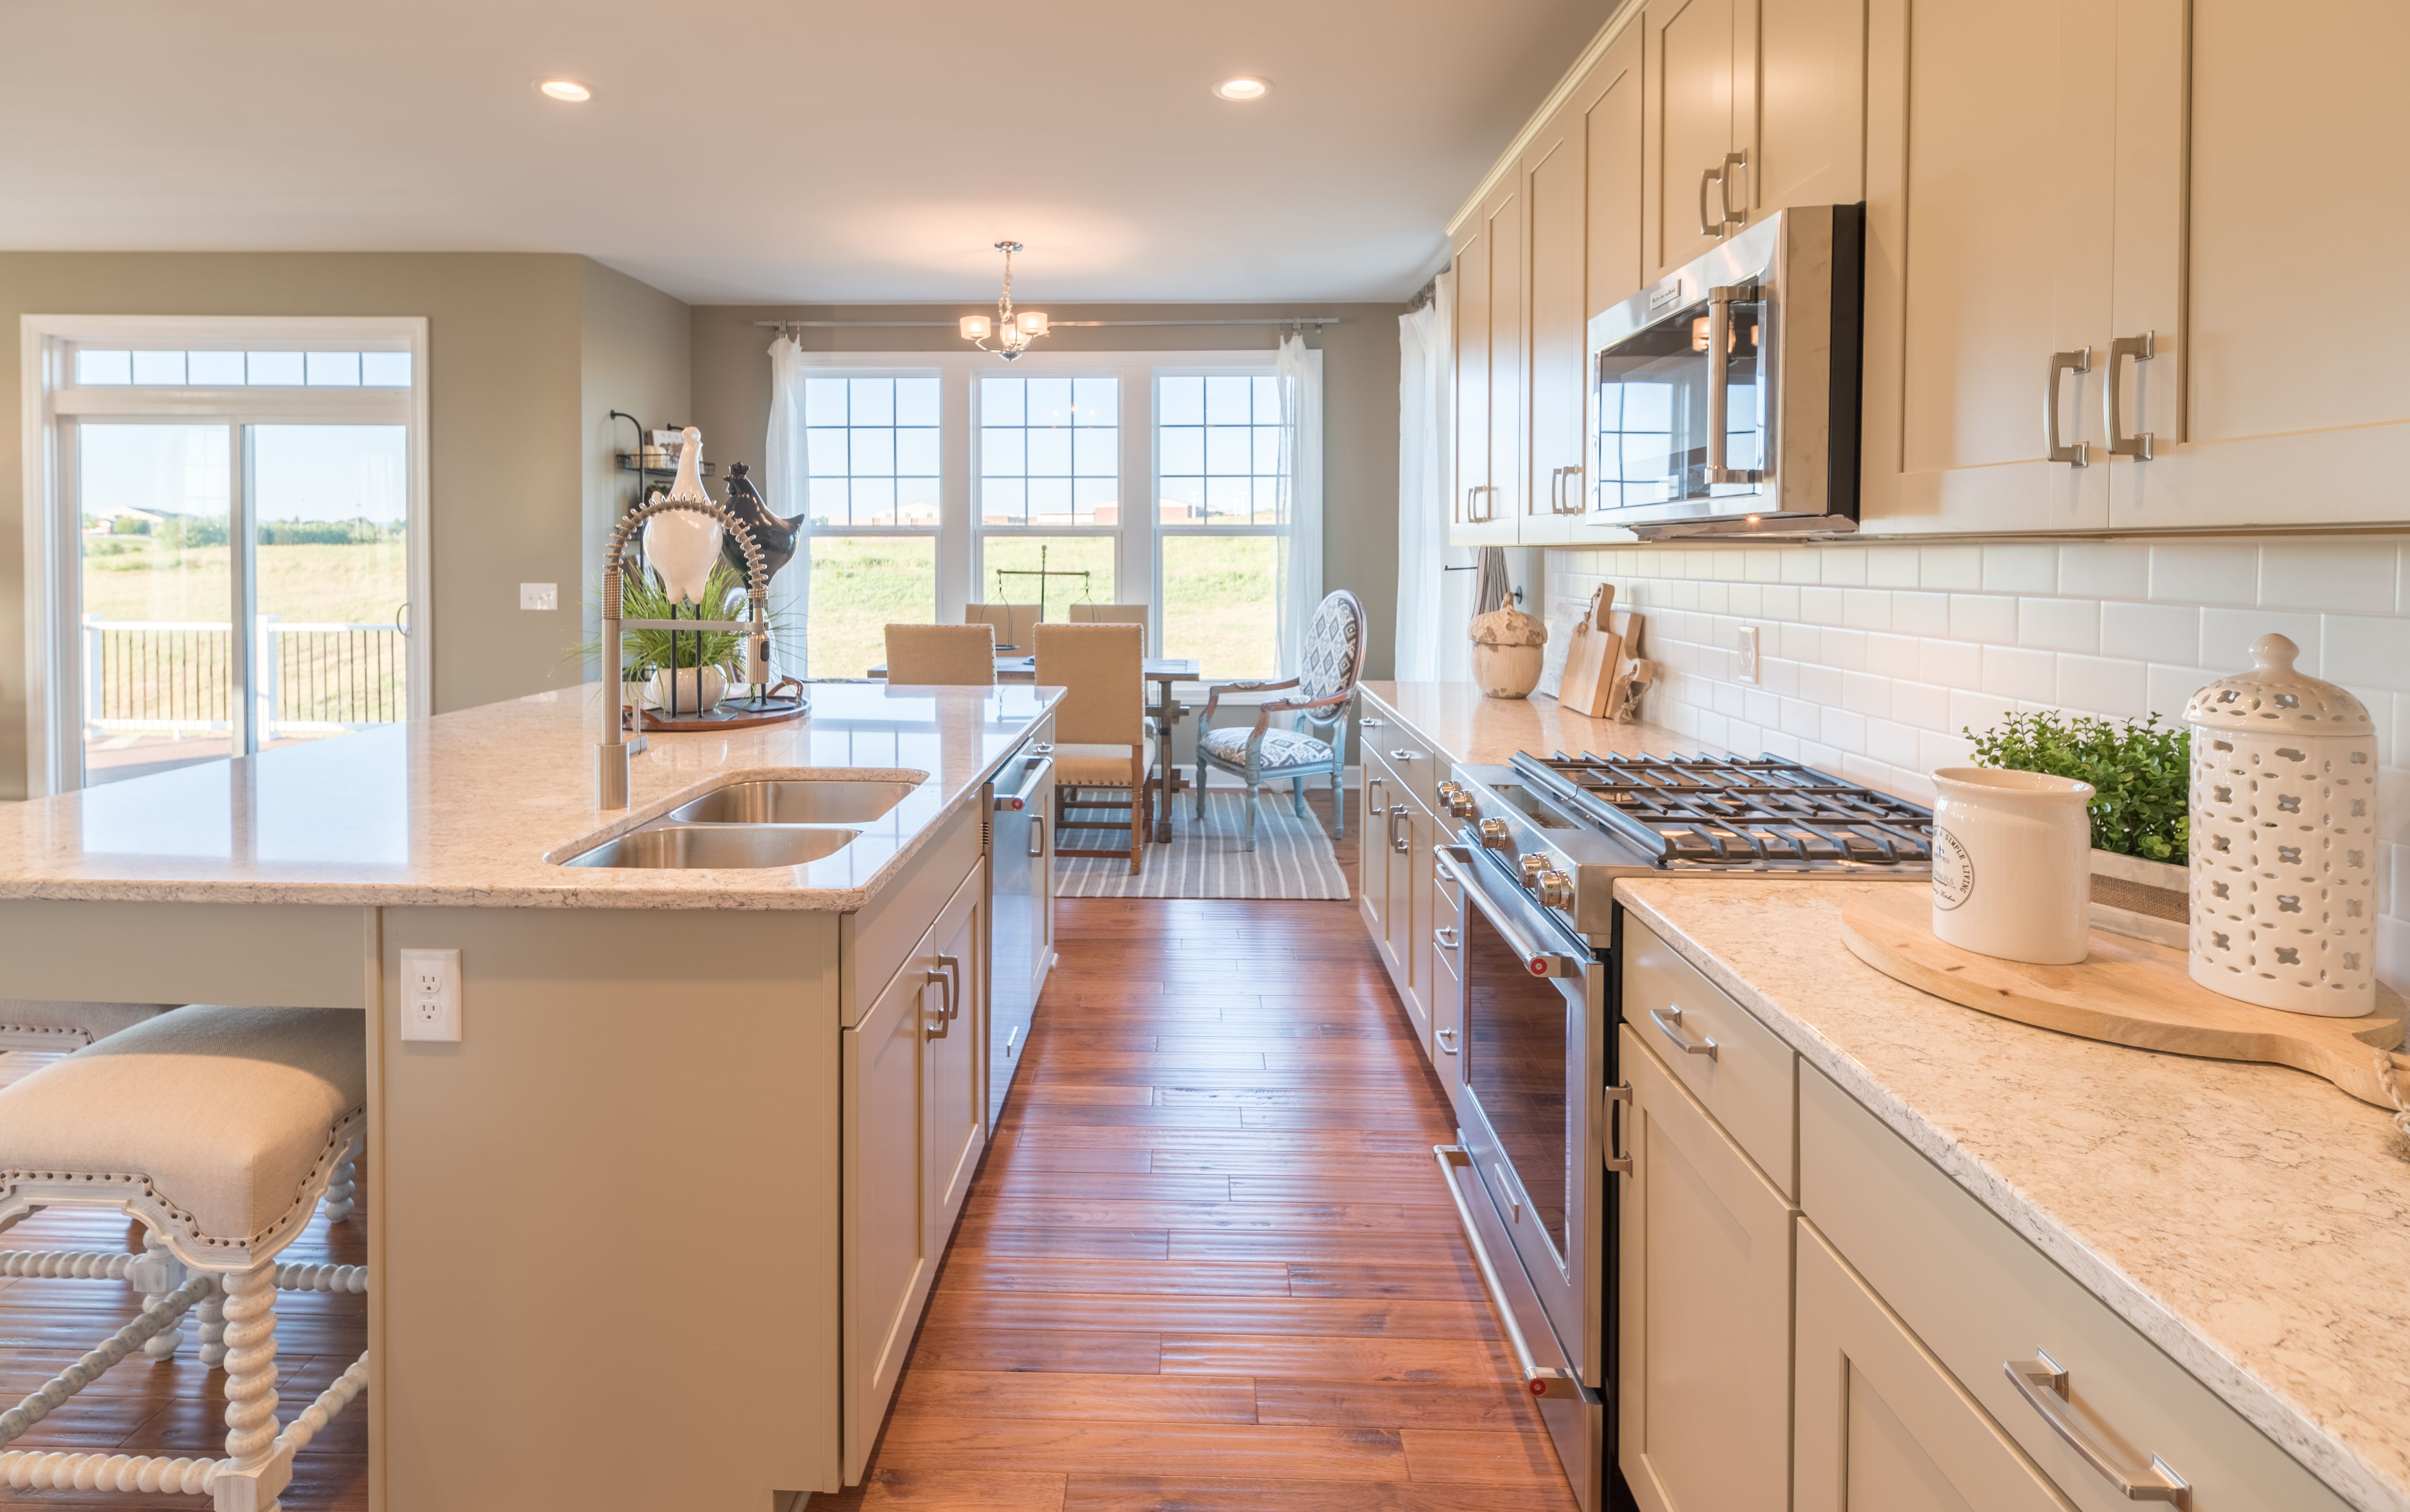 Kitchen featured in The Ashland By Stateson Homes in Roanoke, VA